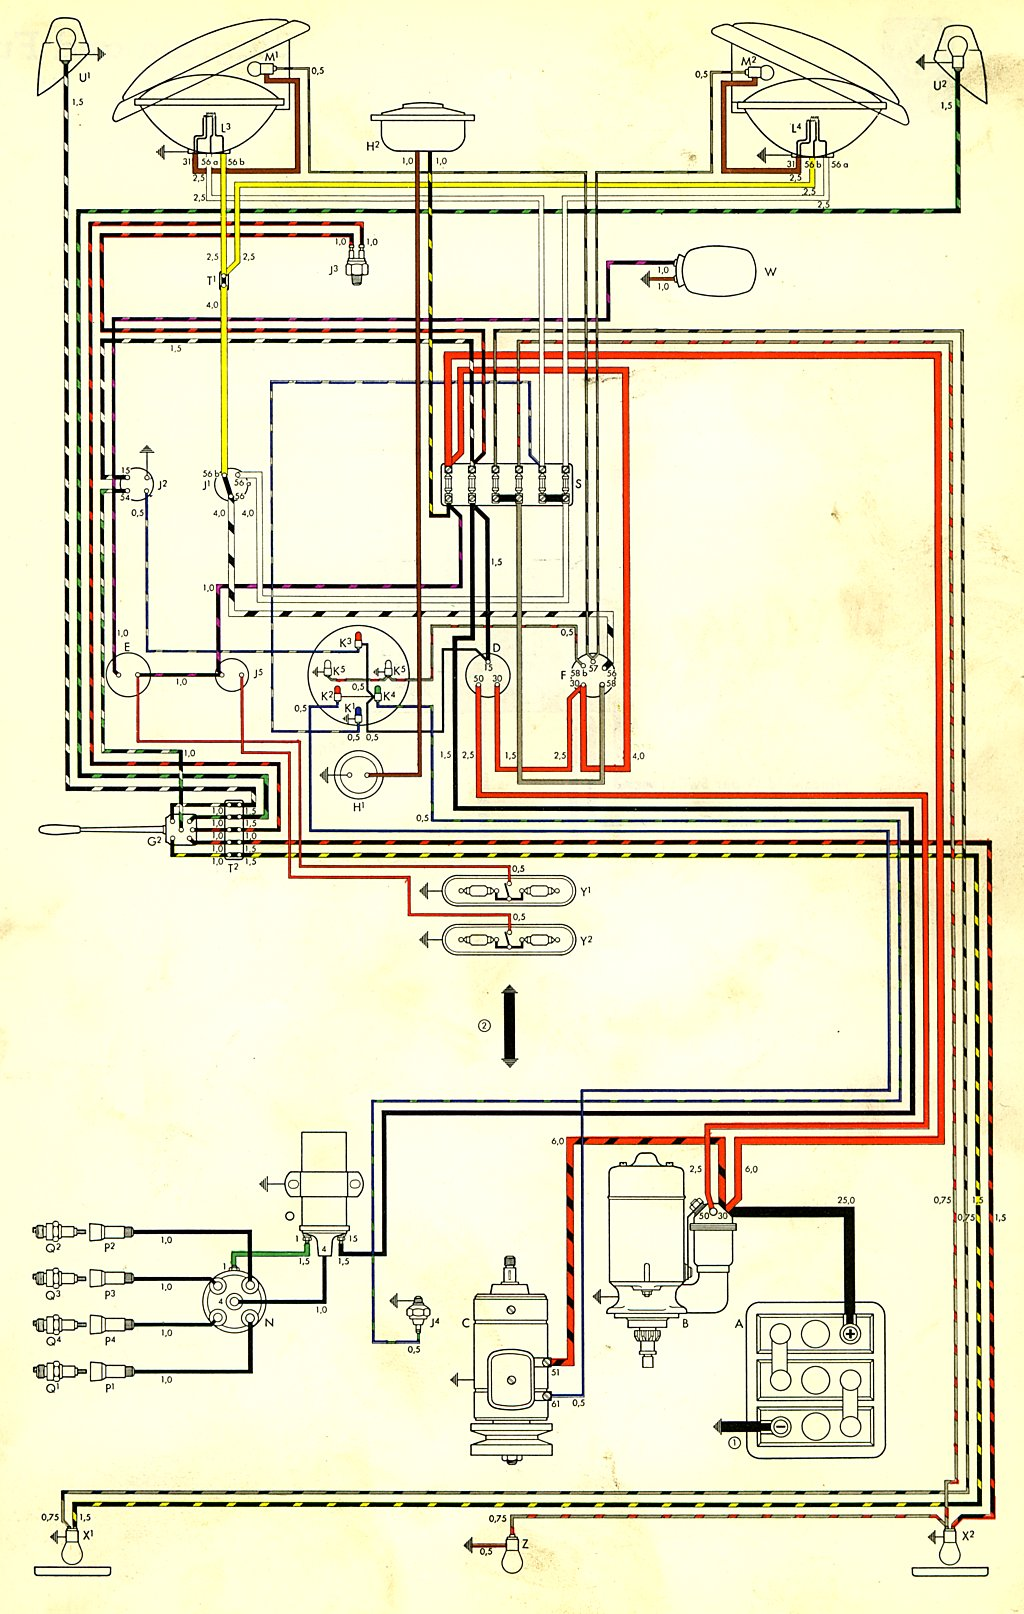 thesamba.com :: type 2 wiring diagrams wire schematic #9